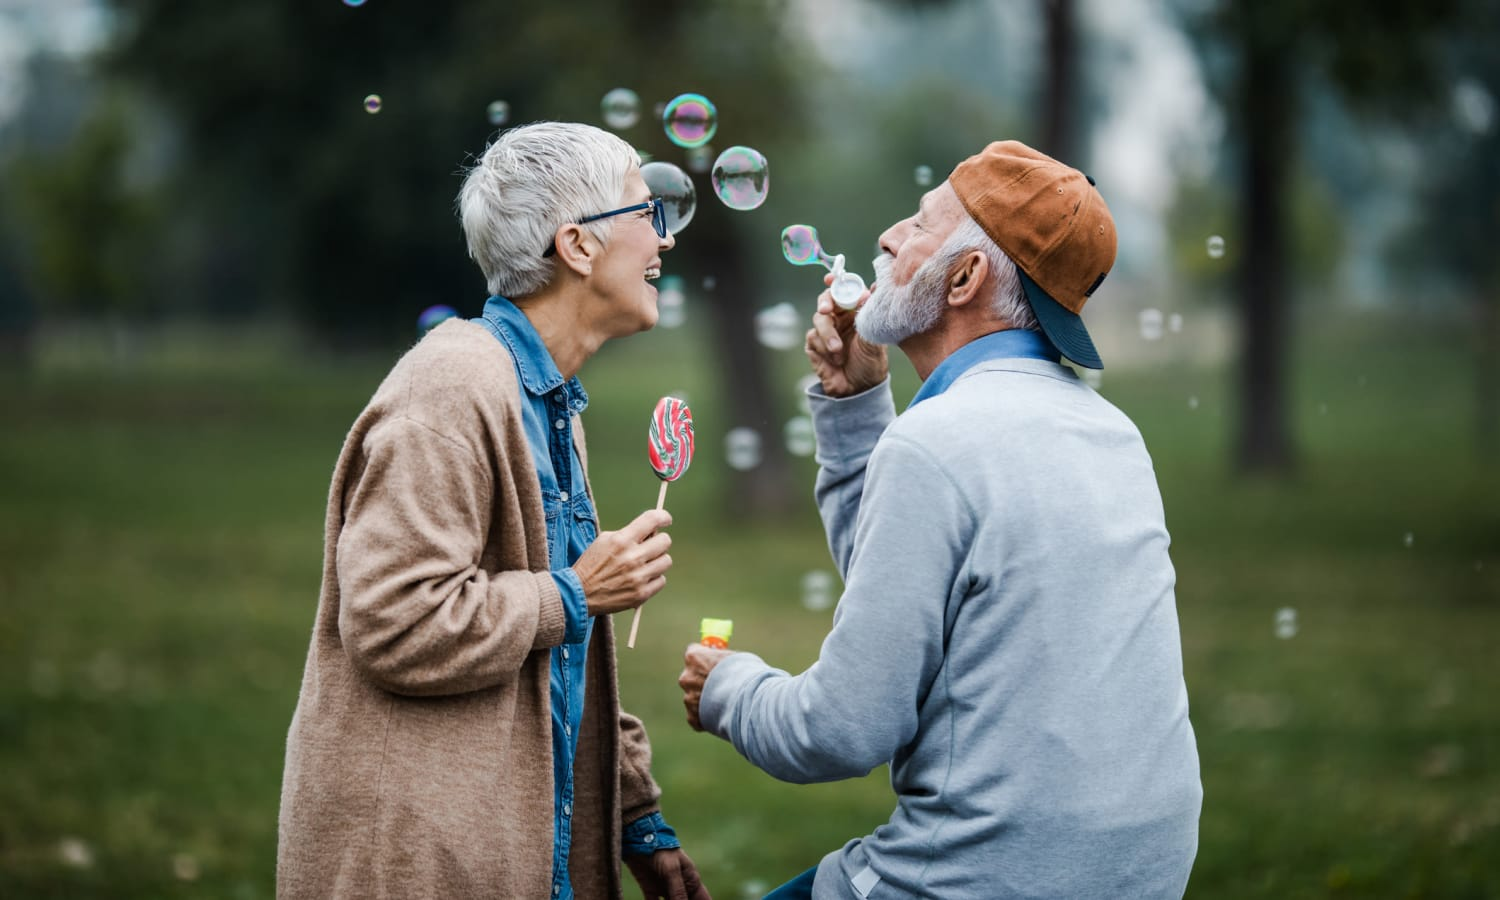 Residents blowing bubbles at The Renaissance at Coeur d'Alene in Coeur d'Alene, Idaho